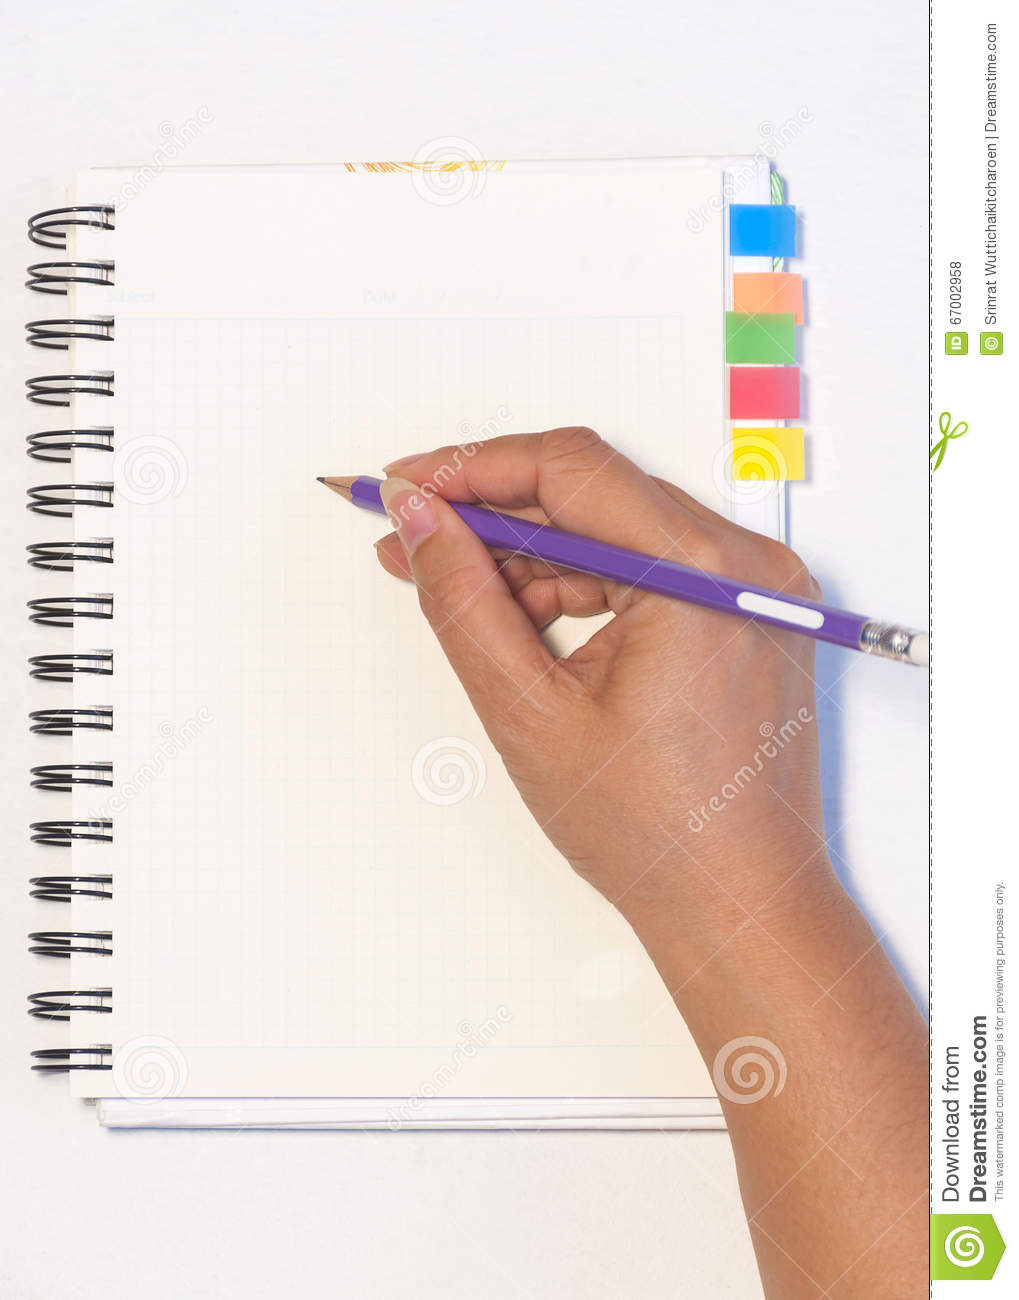 Download Lady's Hand Holding Pencil Ready To Write An Empty Notebook With Sticky Note Memo Stock Photo - Image of sticky, girl: 67002958